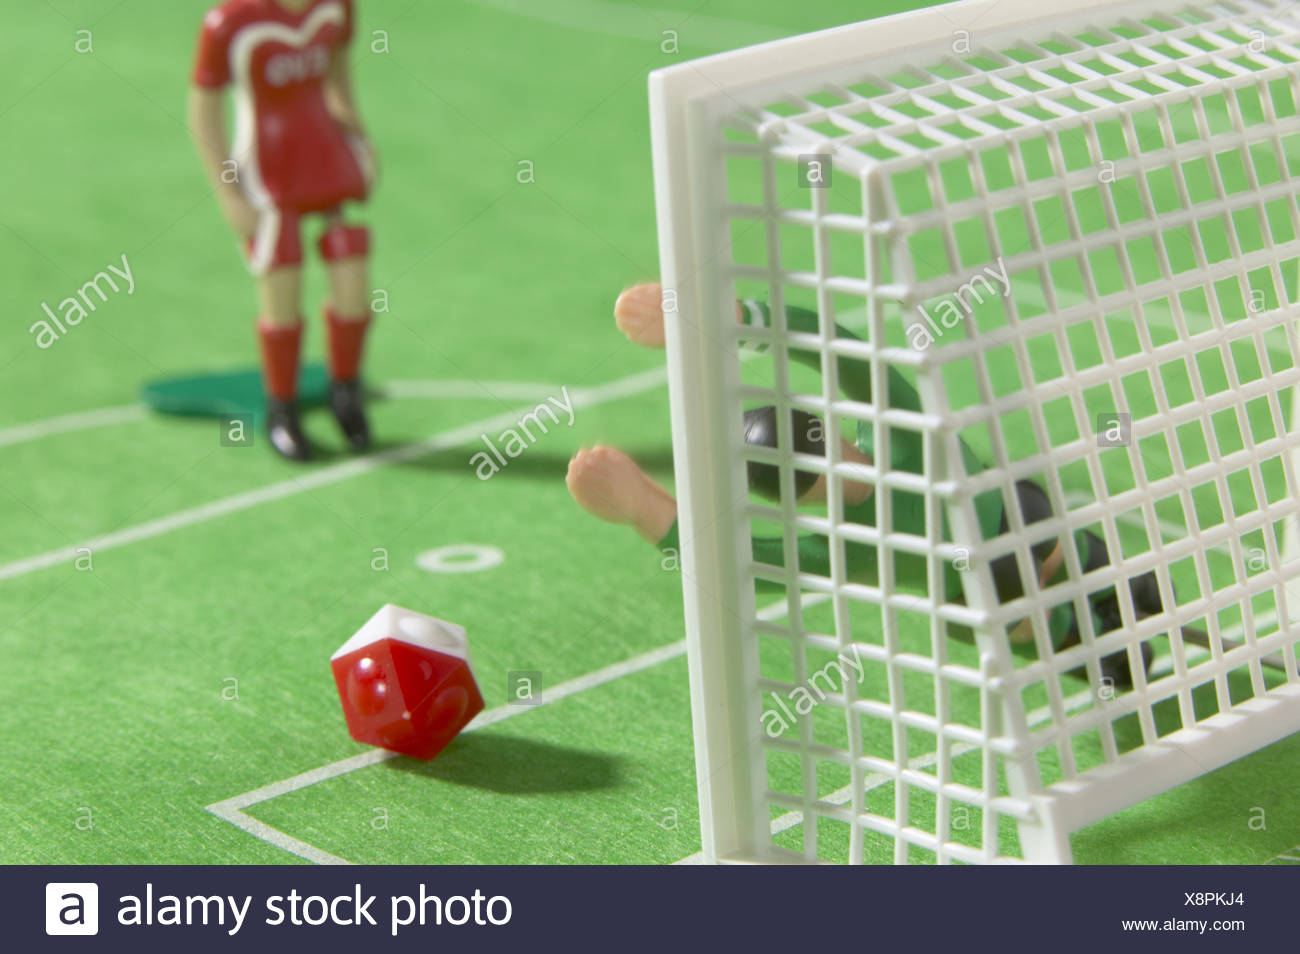 Close-up of figurines of soccer players - Stock Image